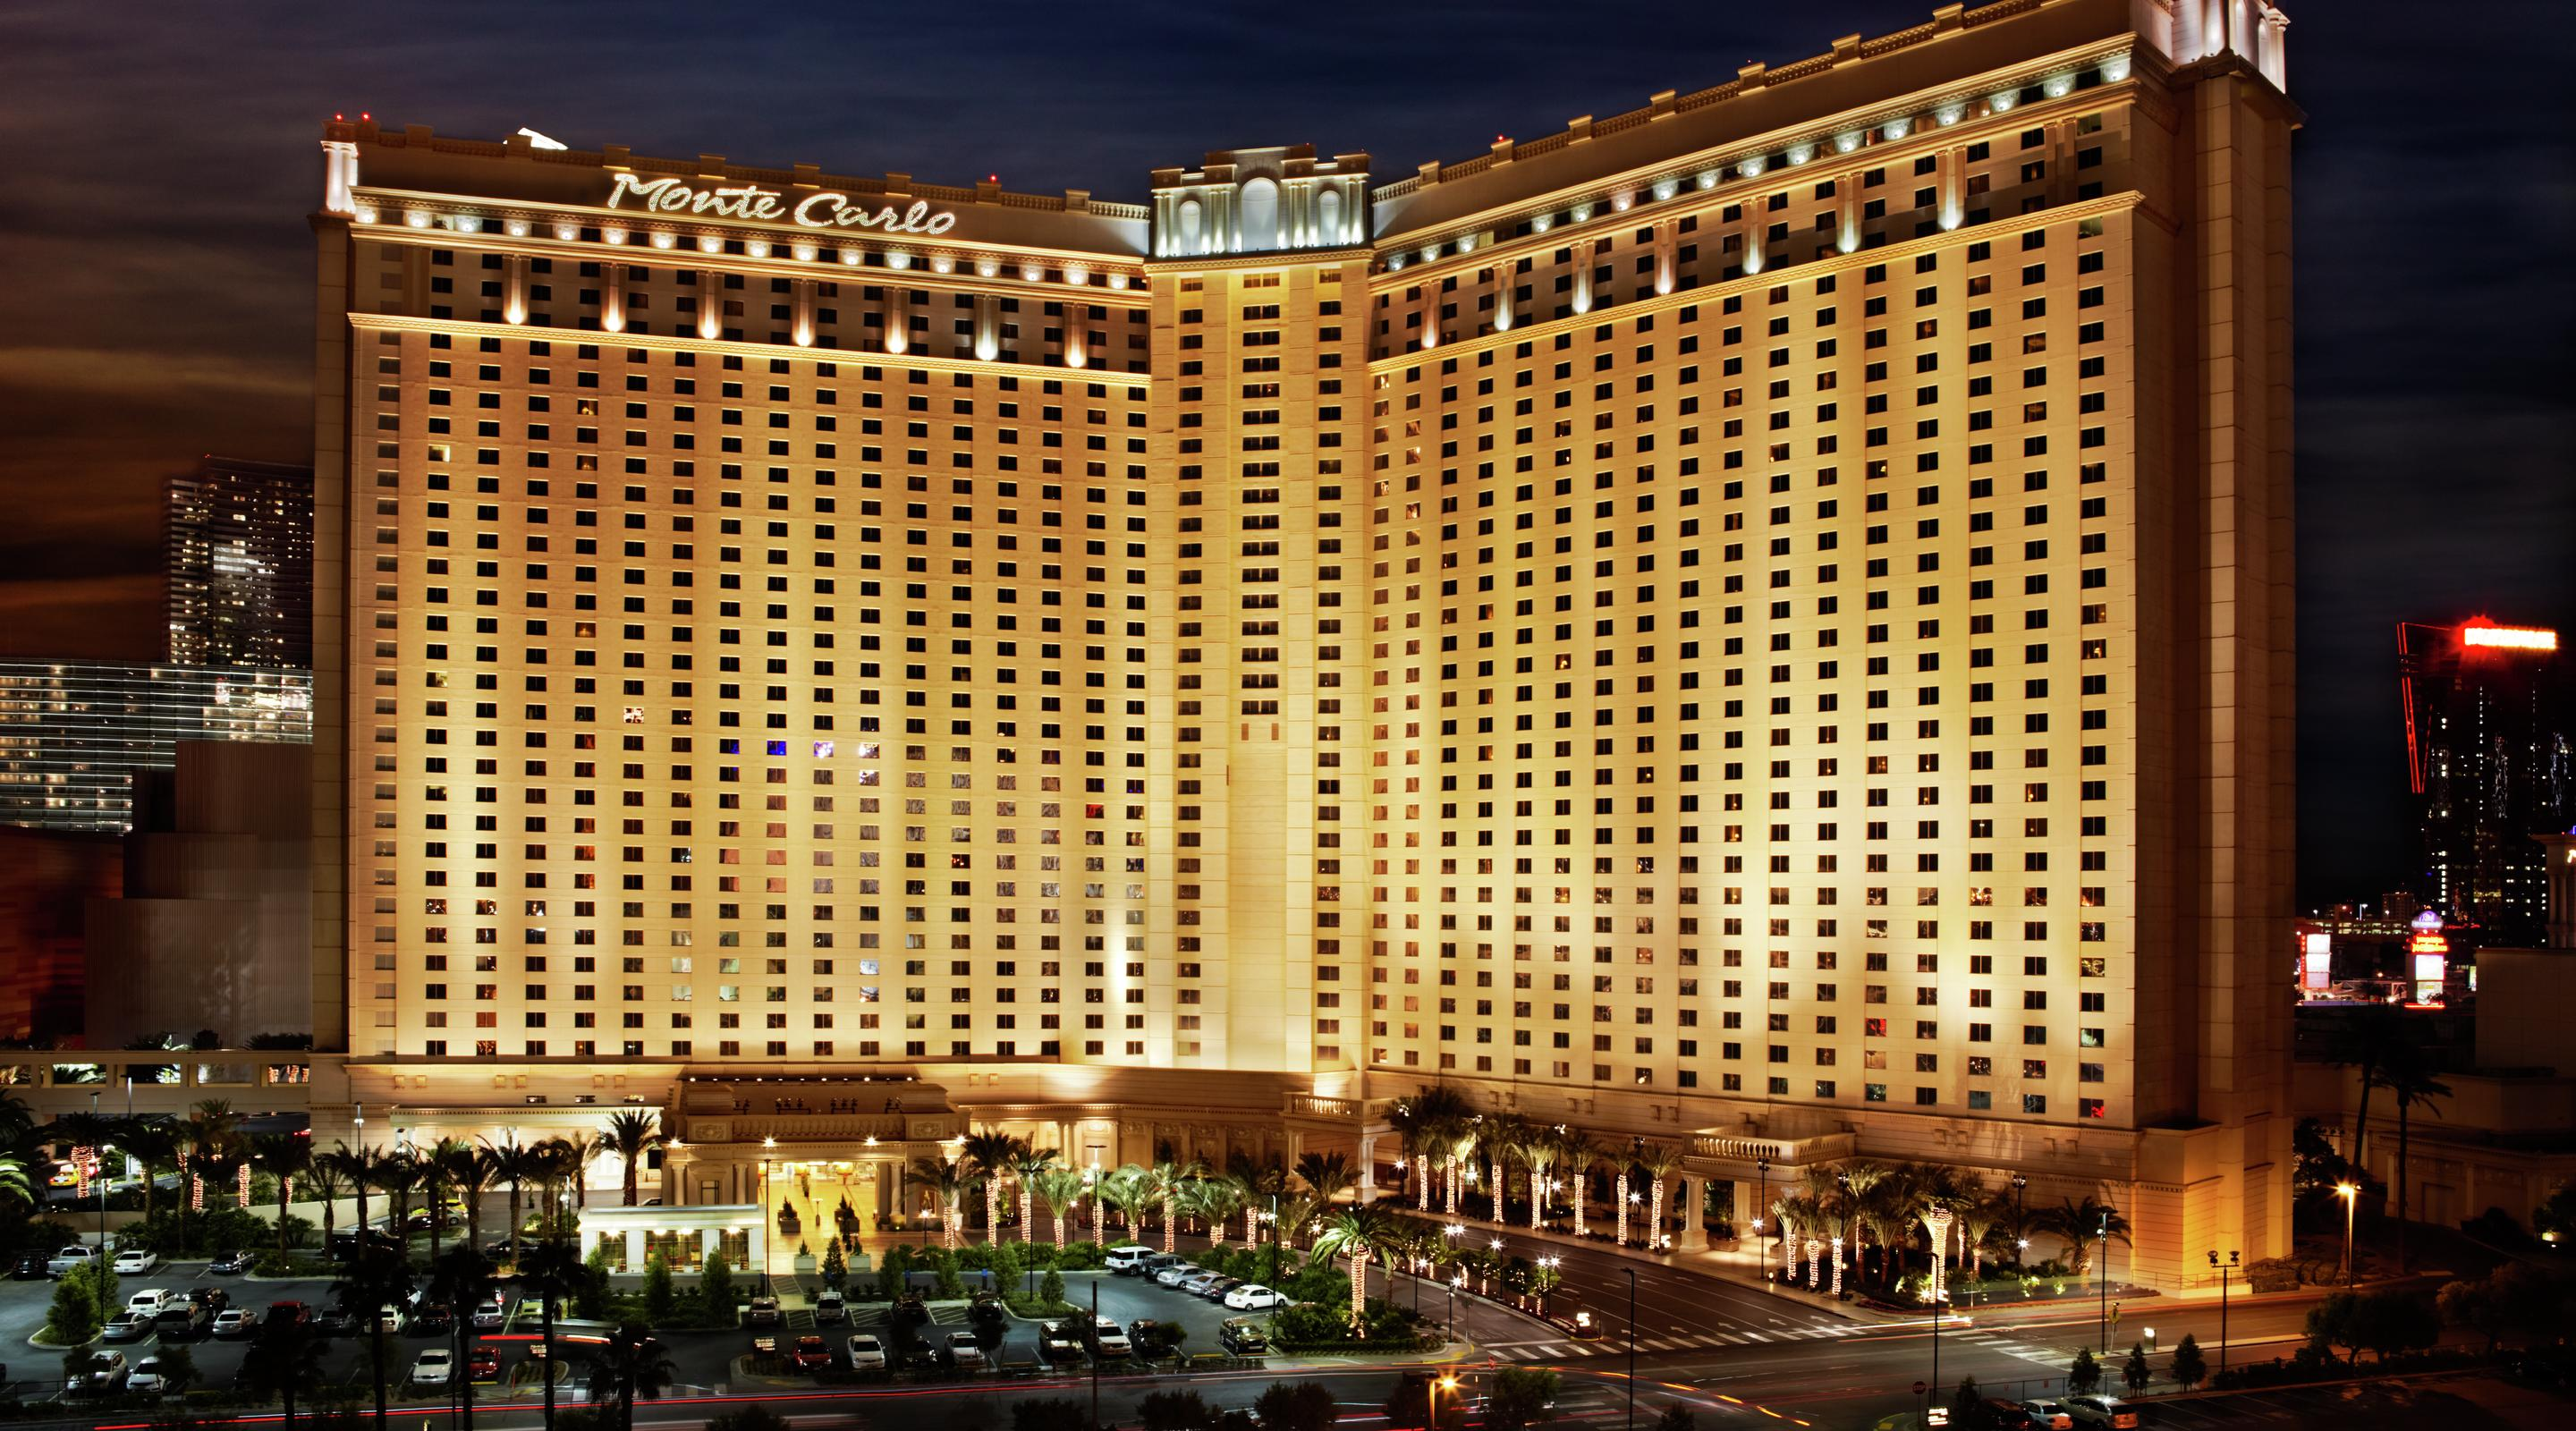 Monte carlo hotel and casino in las vegas best slot receivers in the nfl 2014